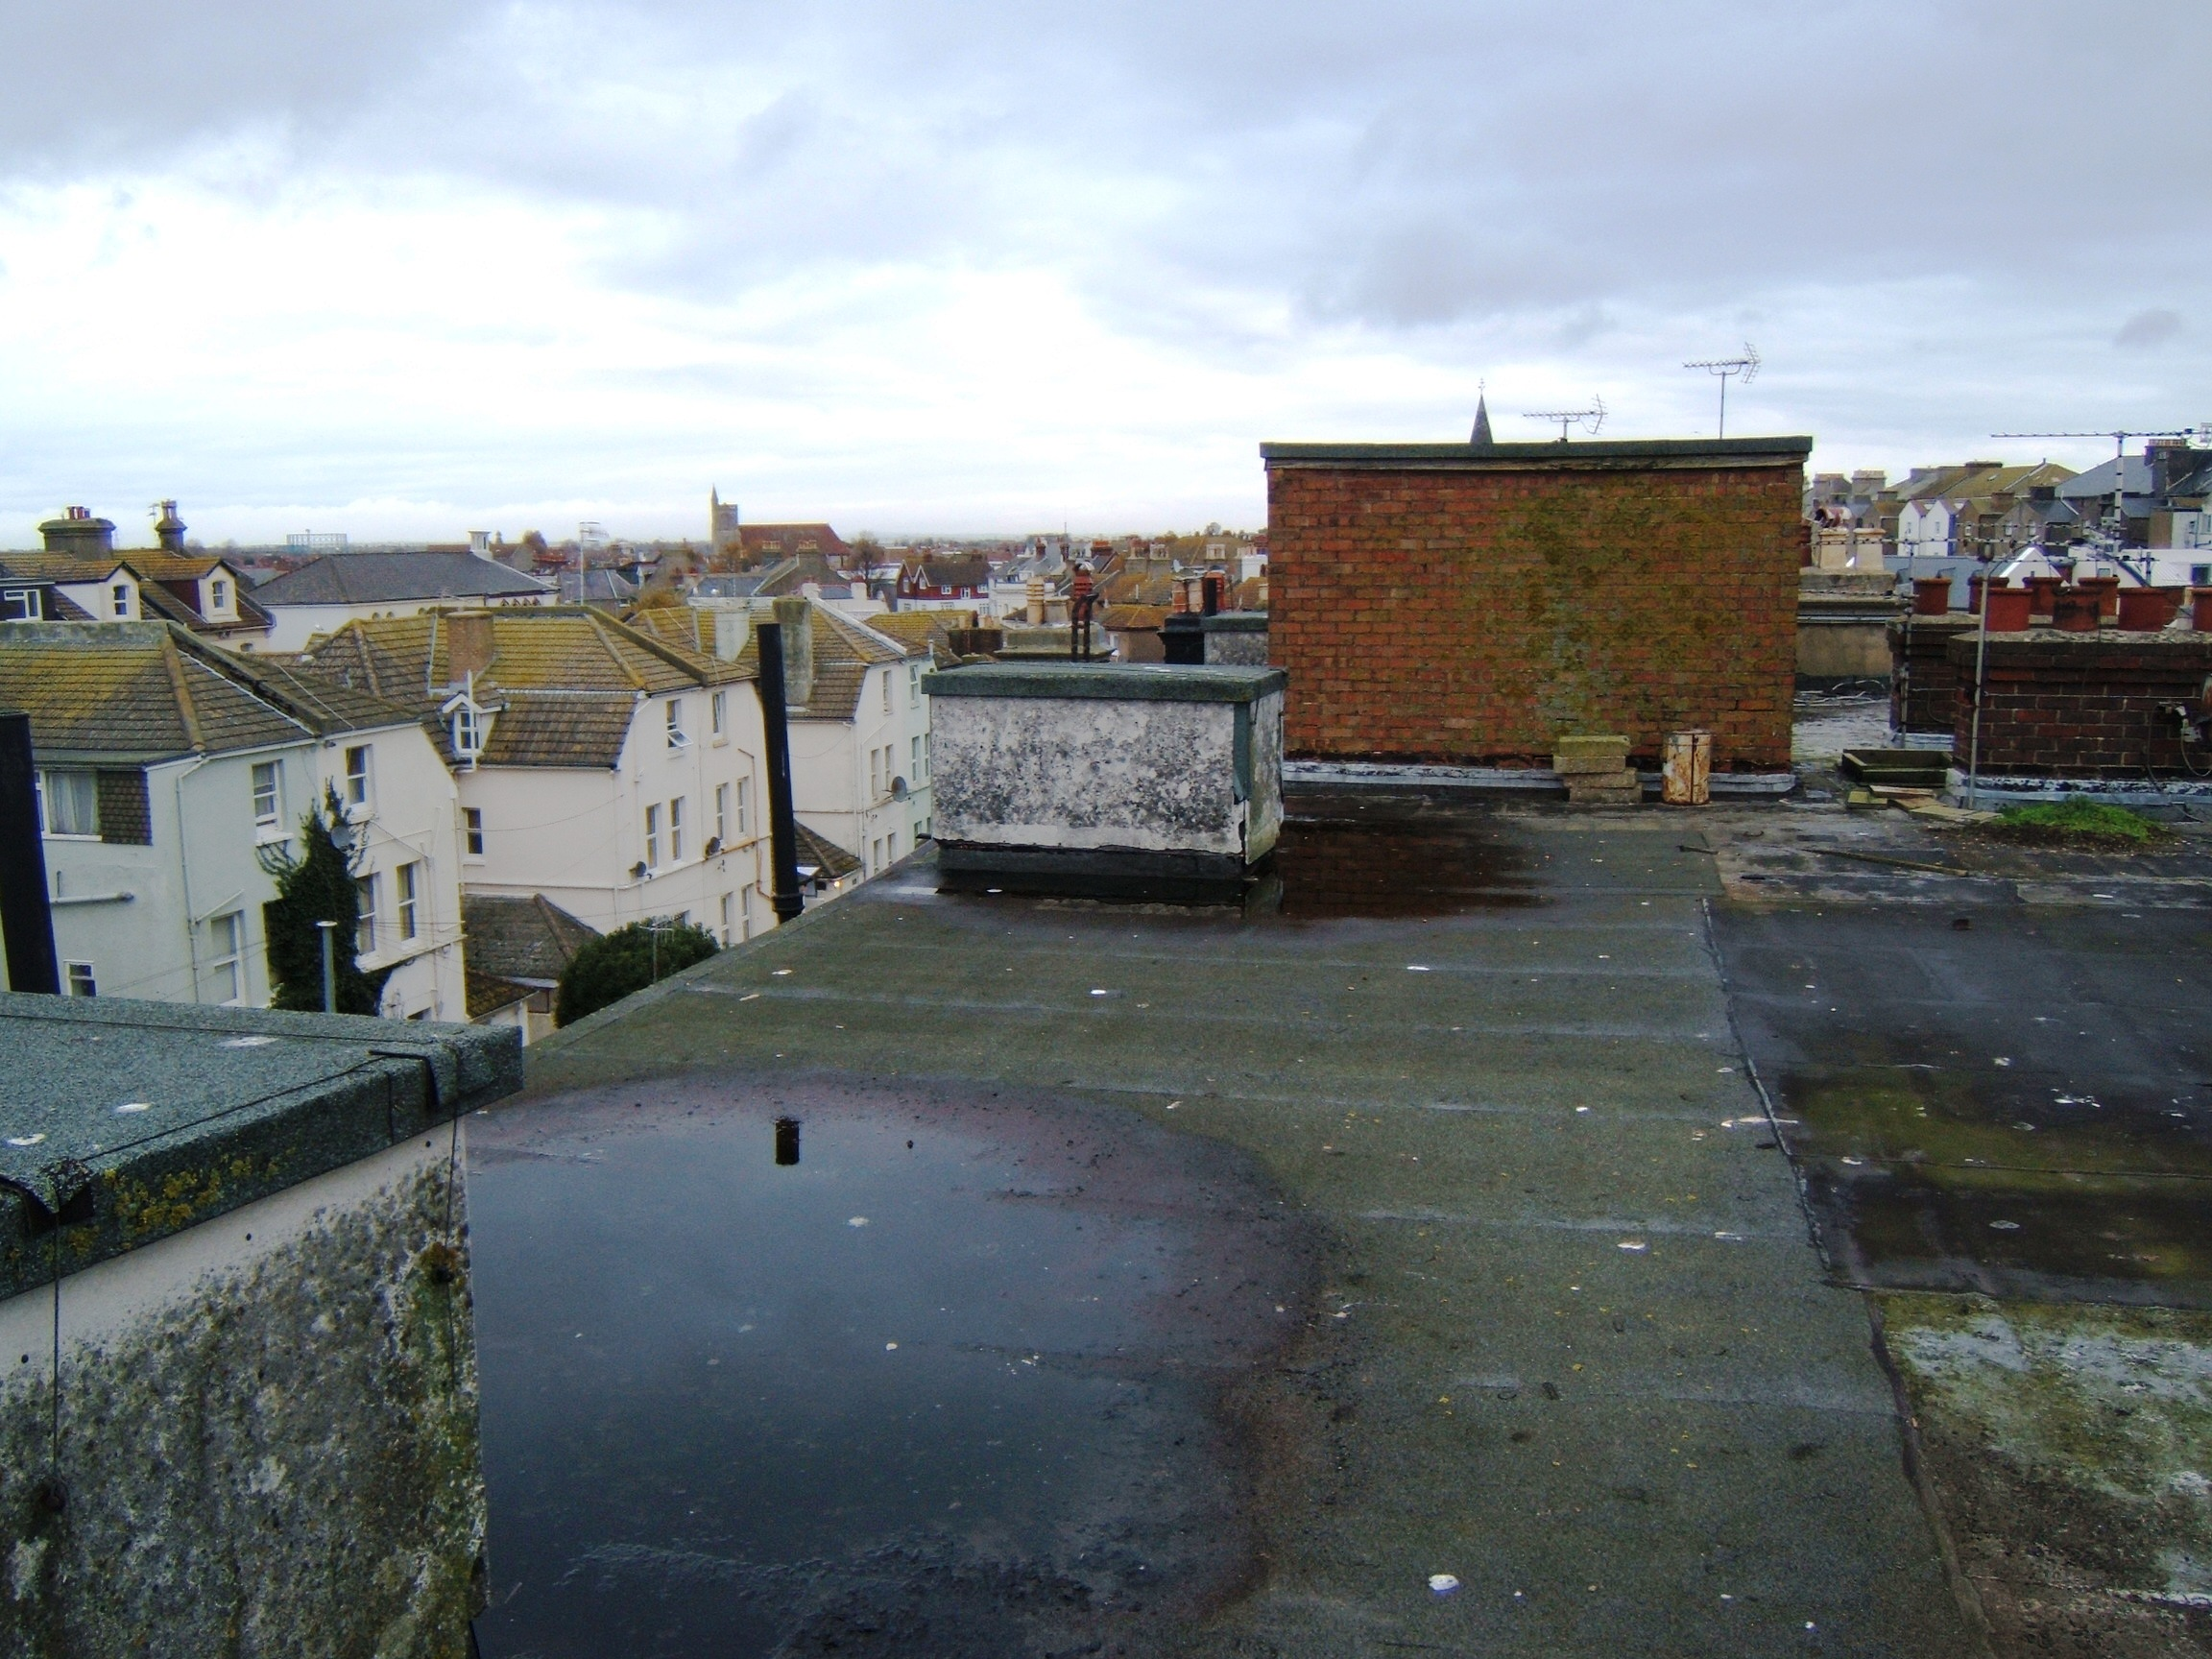 Flooding on roof